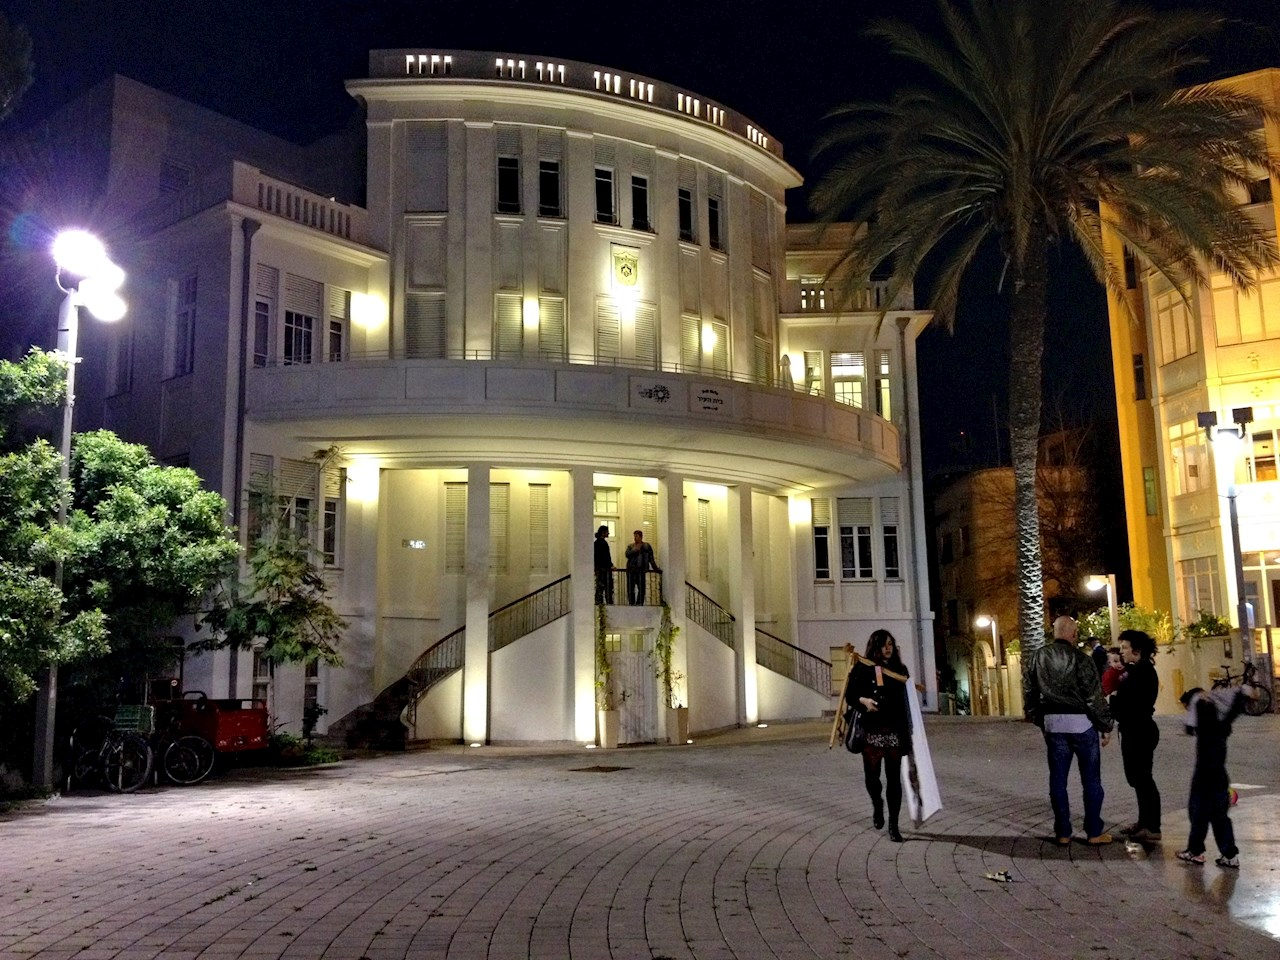 Old city building in Tel Aviv